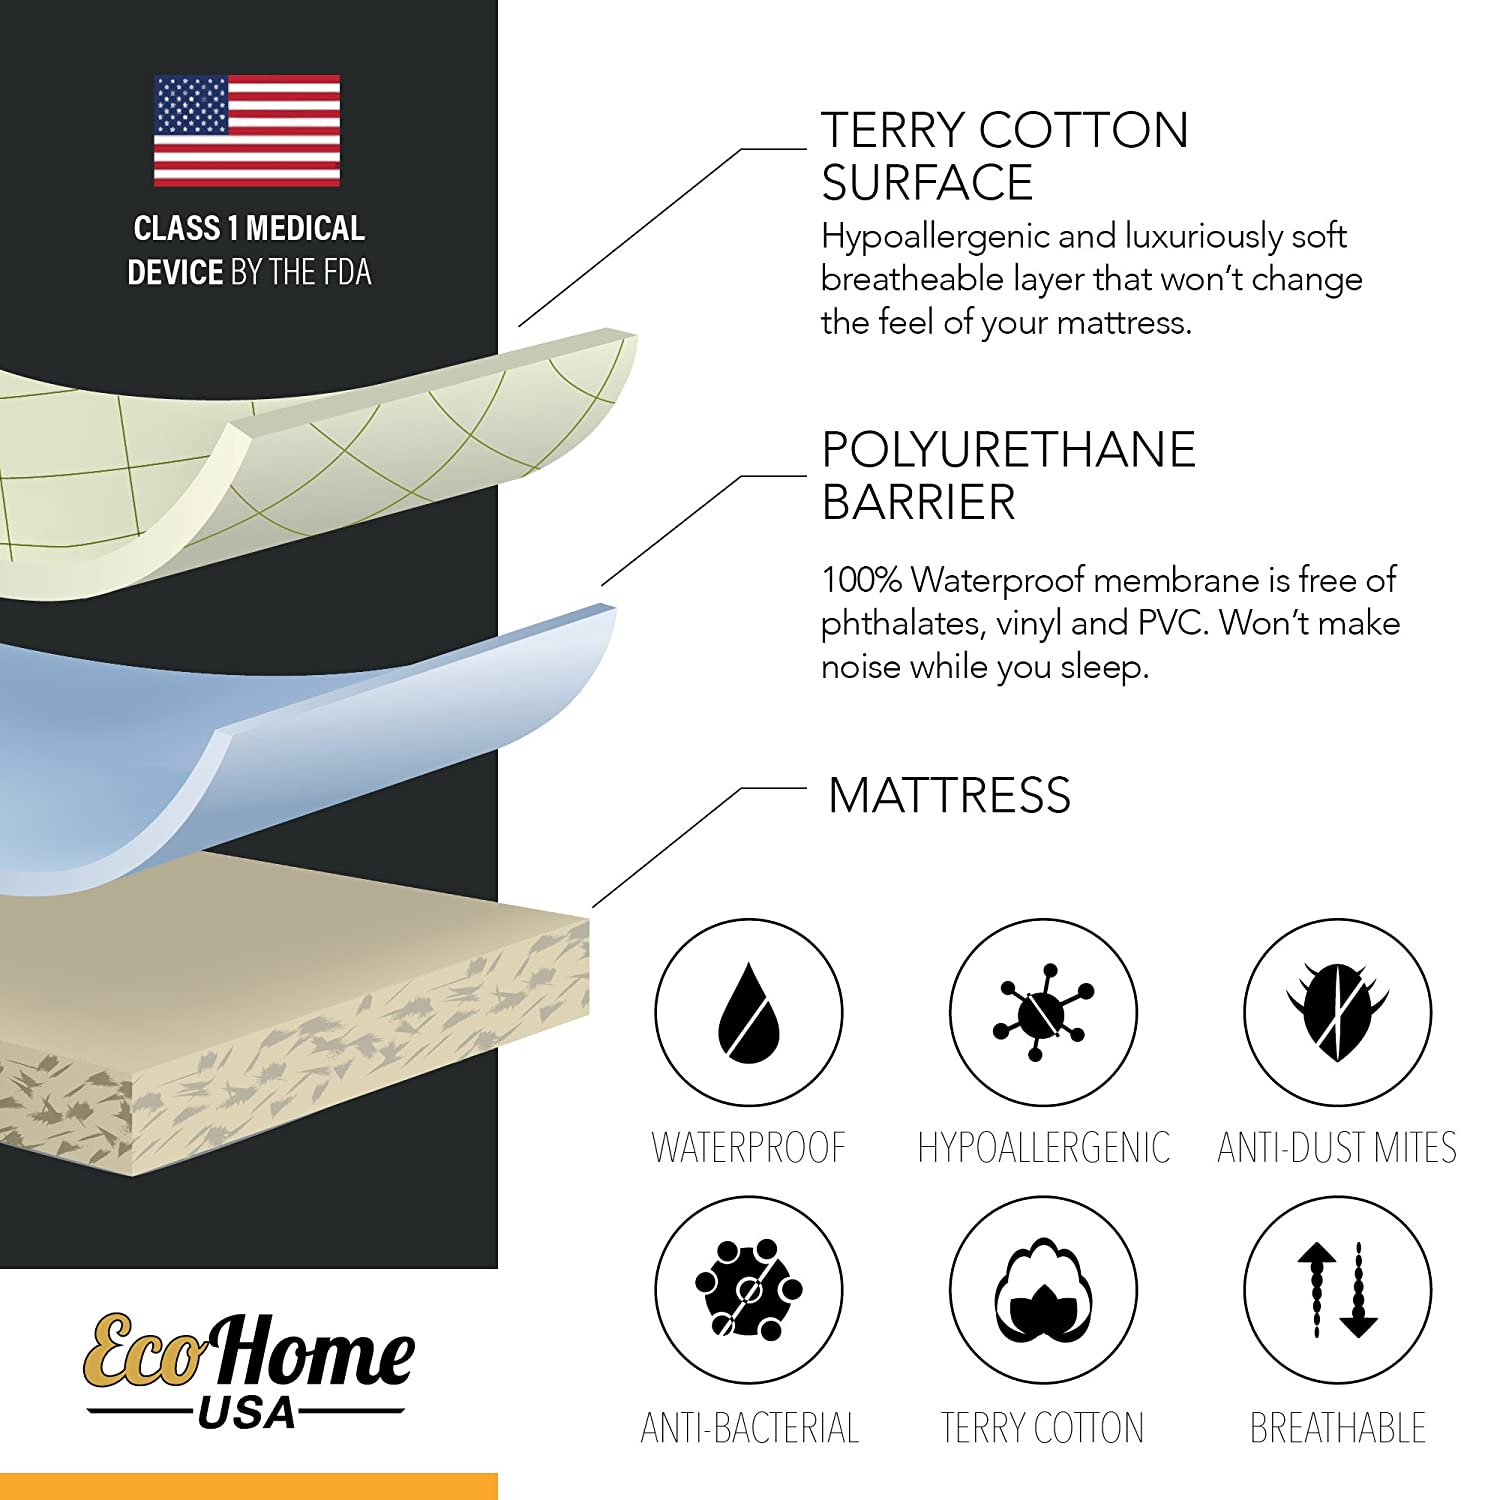 Terry Cotton Topper Eco Home USA Premium Mattress Pad Protector Vinyl Free King CNPC-01 Waterproof /& Hypoallergenic Cover